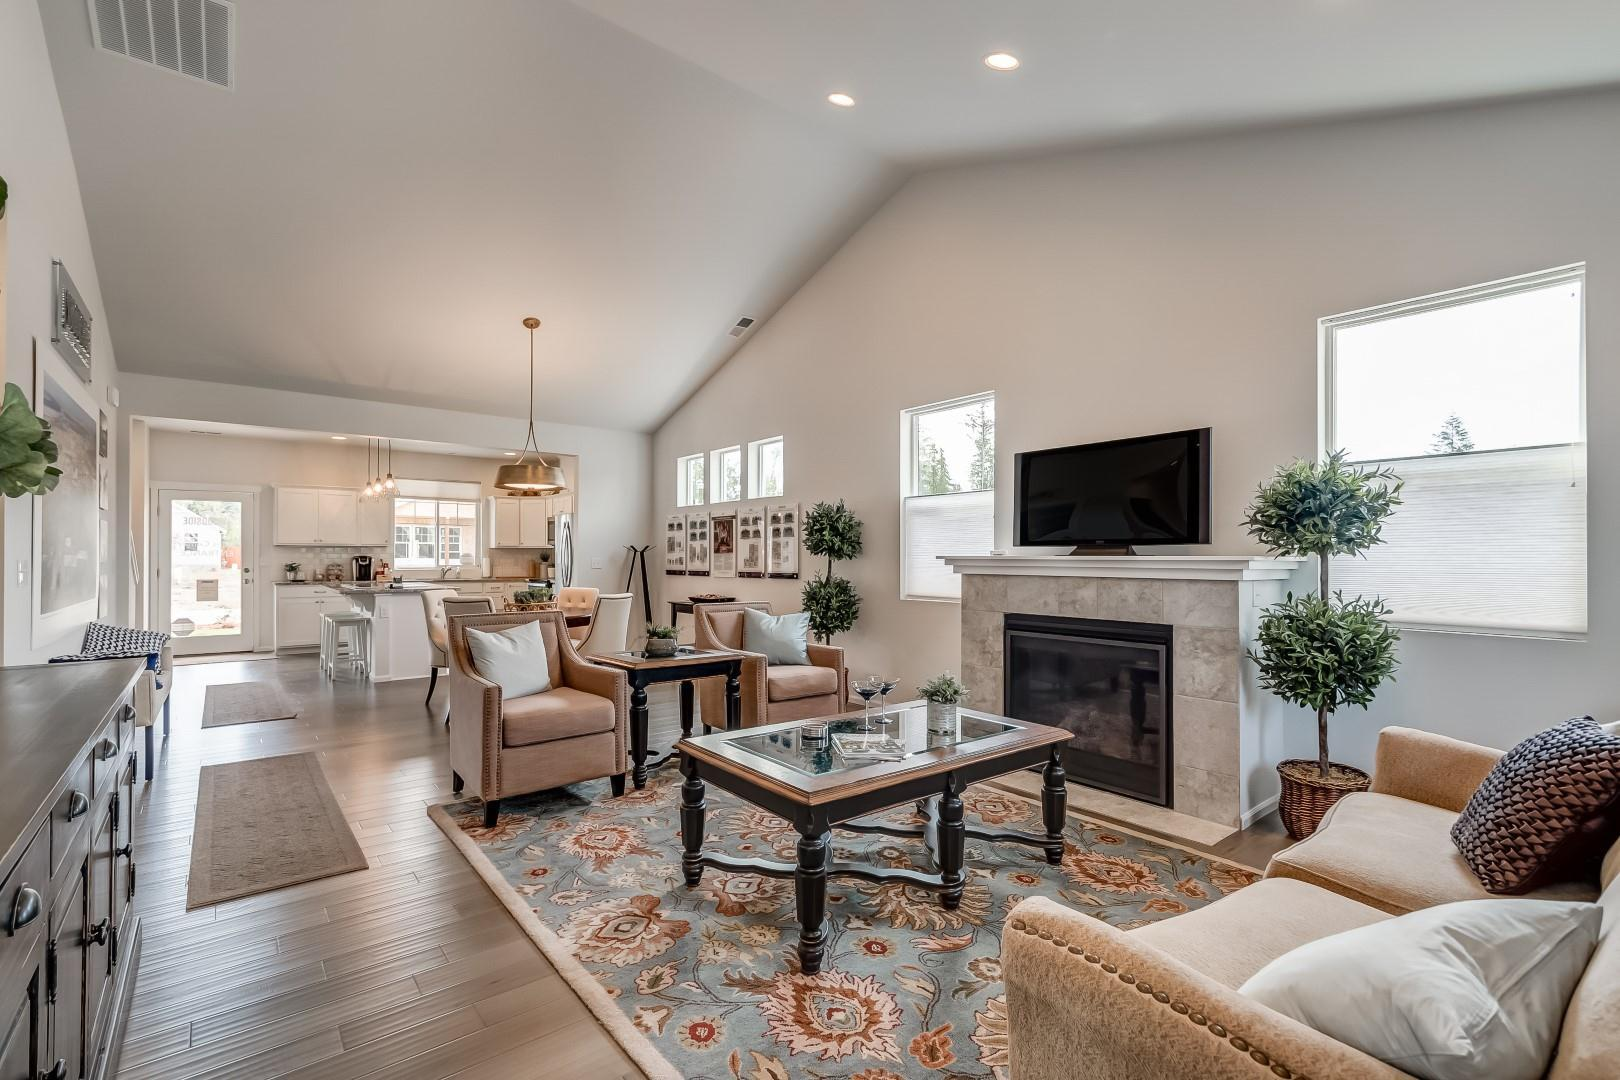 Living Area featured in the CC Birch By Landed Gentry Homes in Bellingham, WA